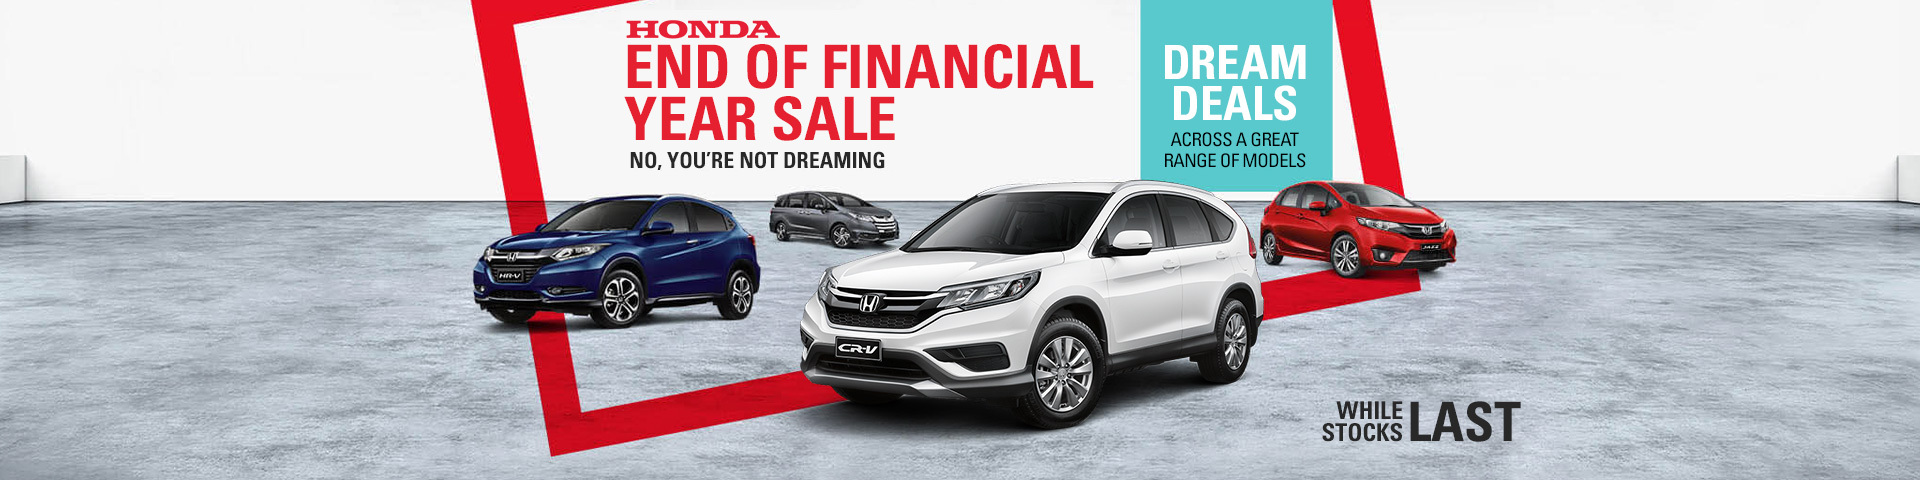 Honda - National offer - End Of Financial Year Sale; Hurry! While Stocks Last